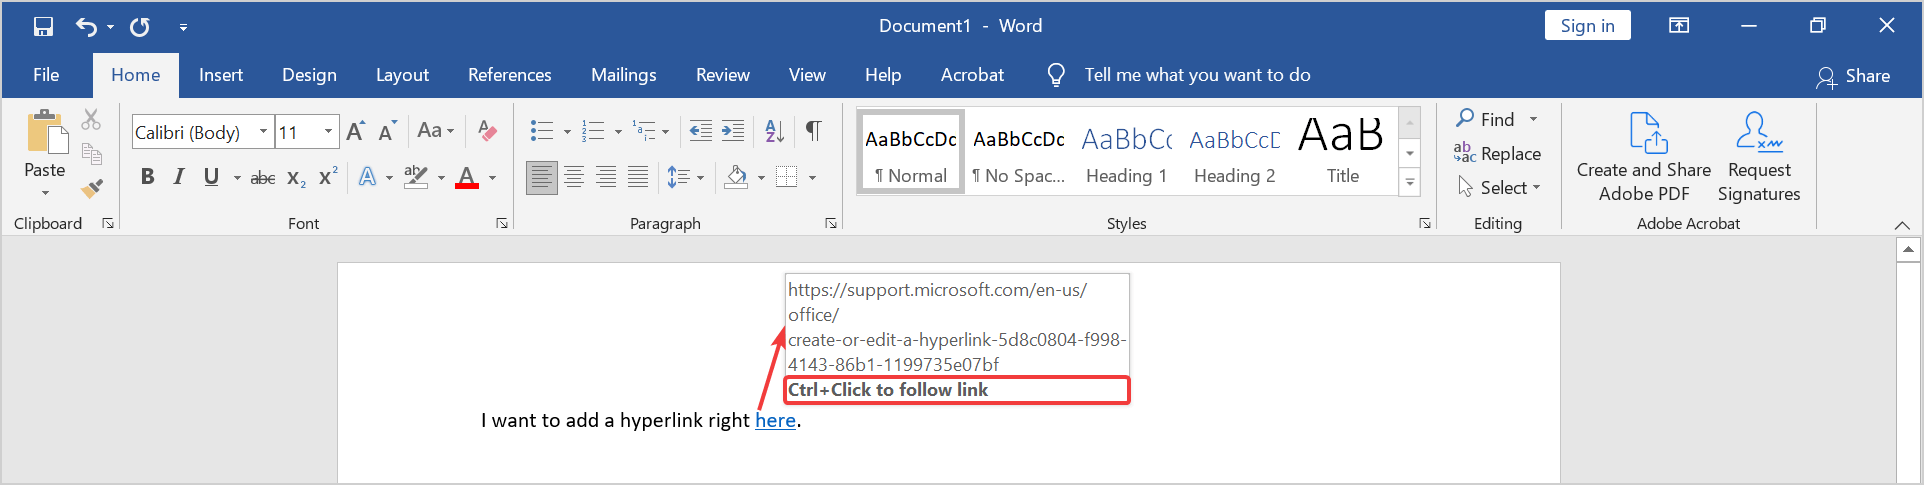 how to create a hyperlink in word